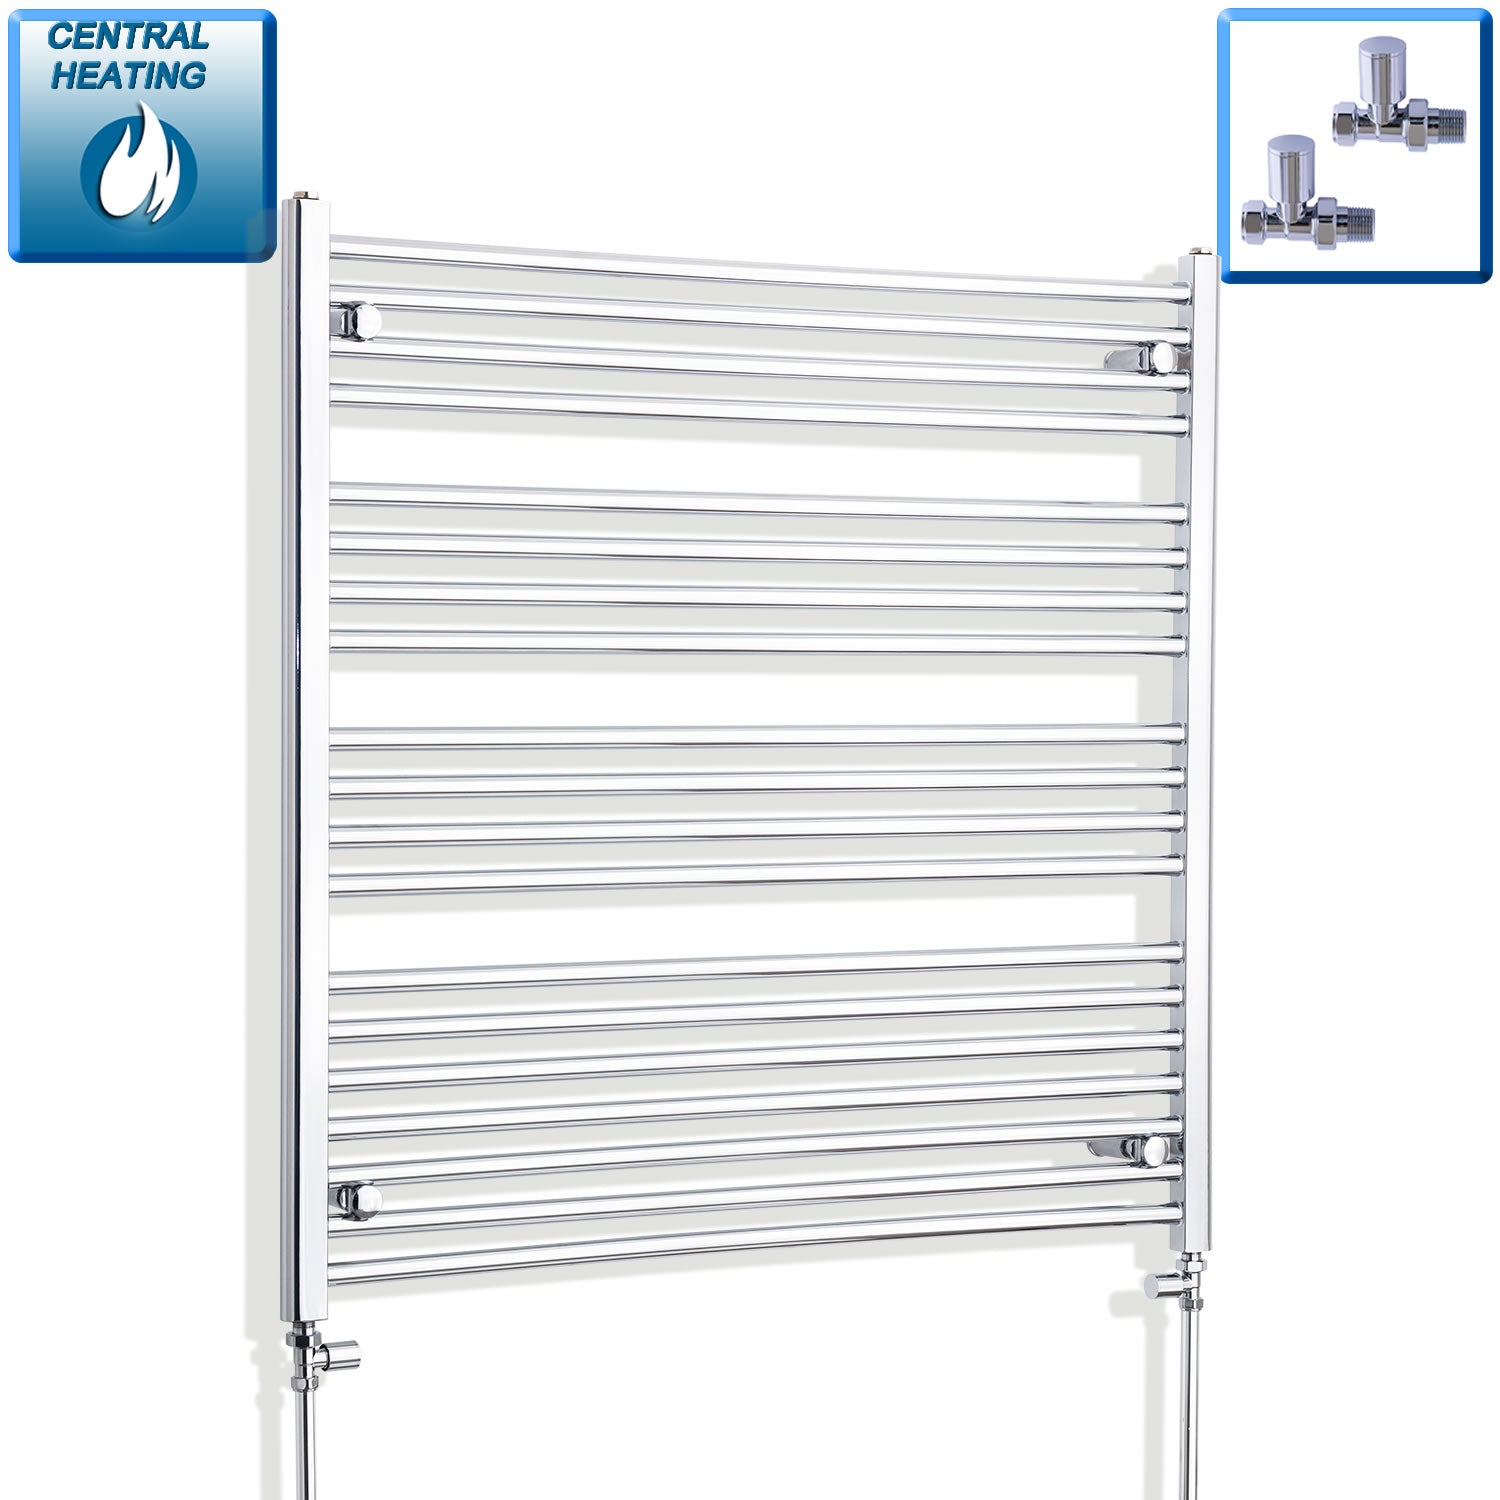 950mm Wide 1000mm High Flat Chrome Heated Towel Rail Radiator HTR,With Straight Valve